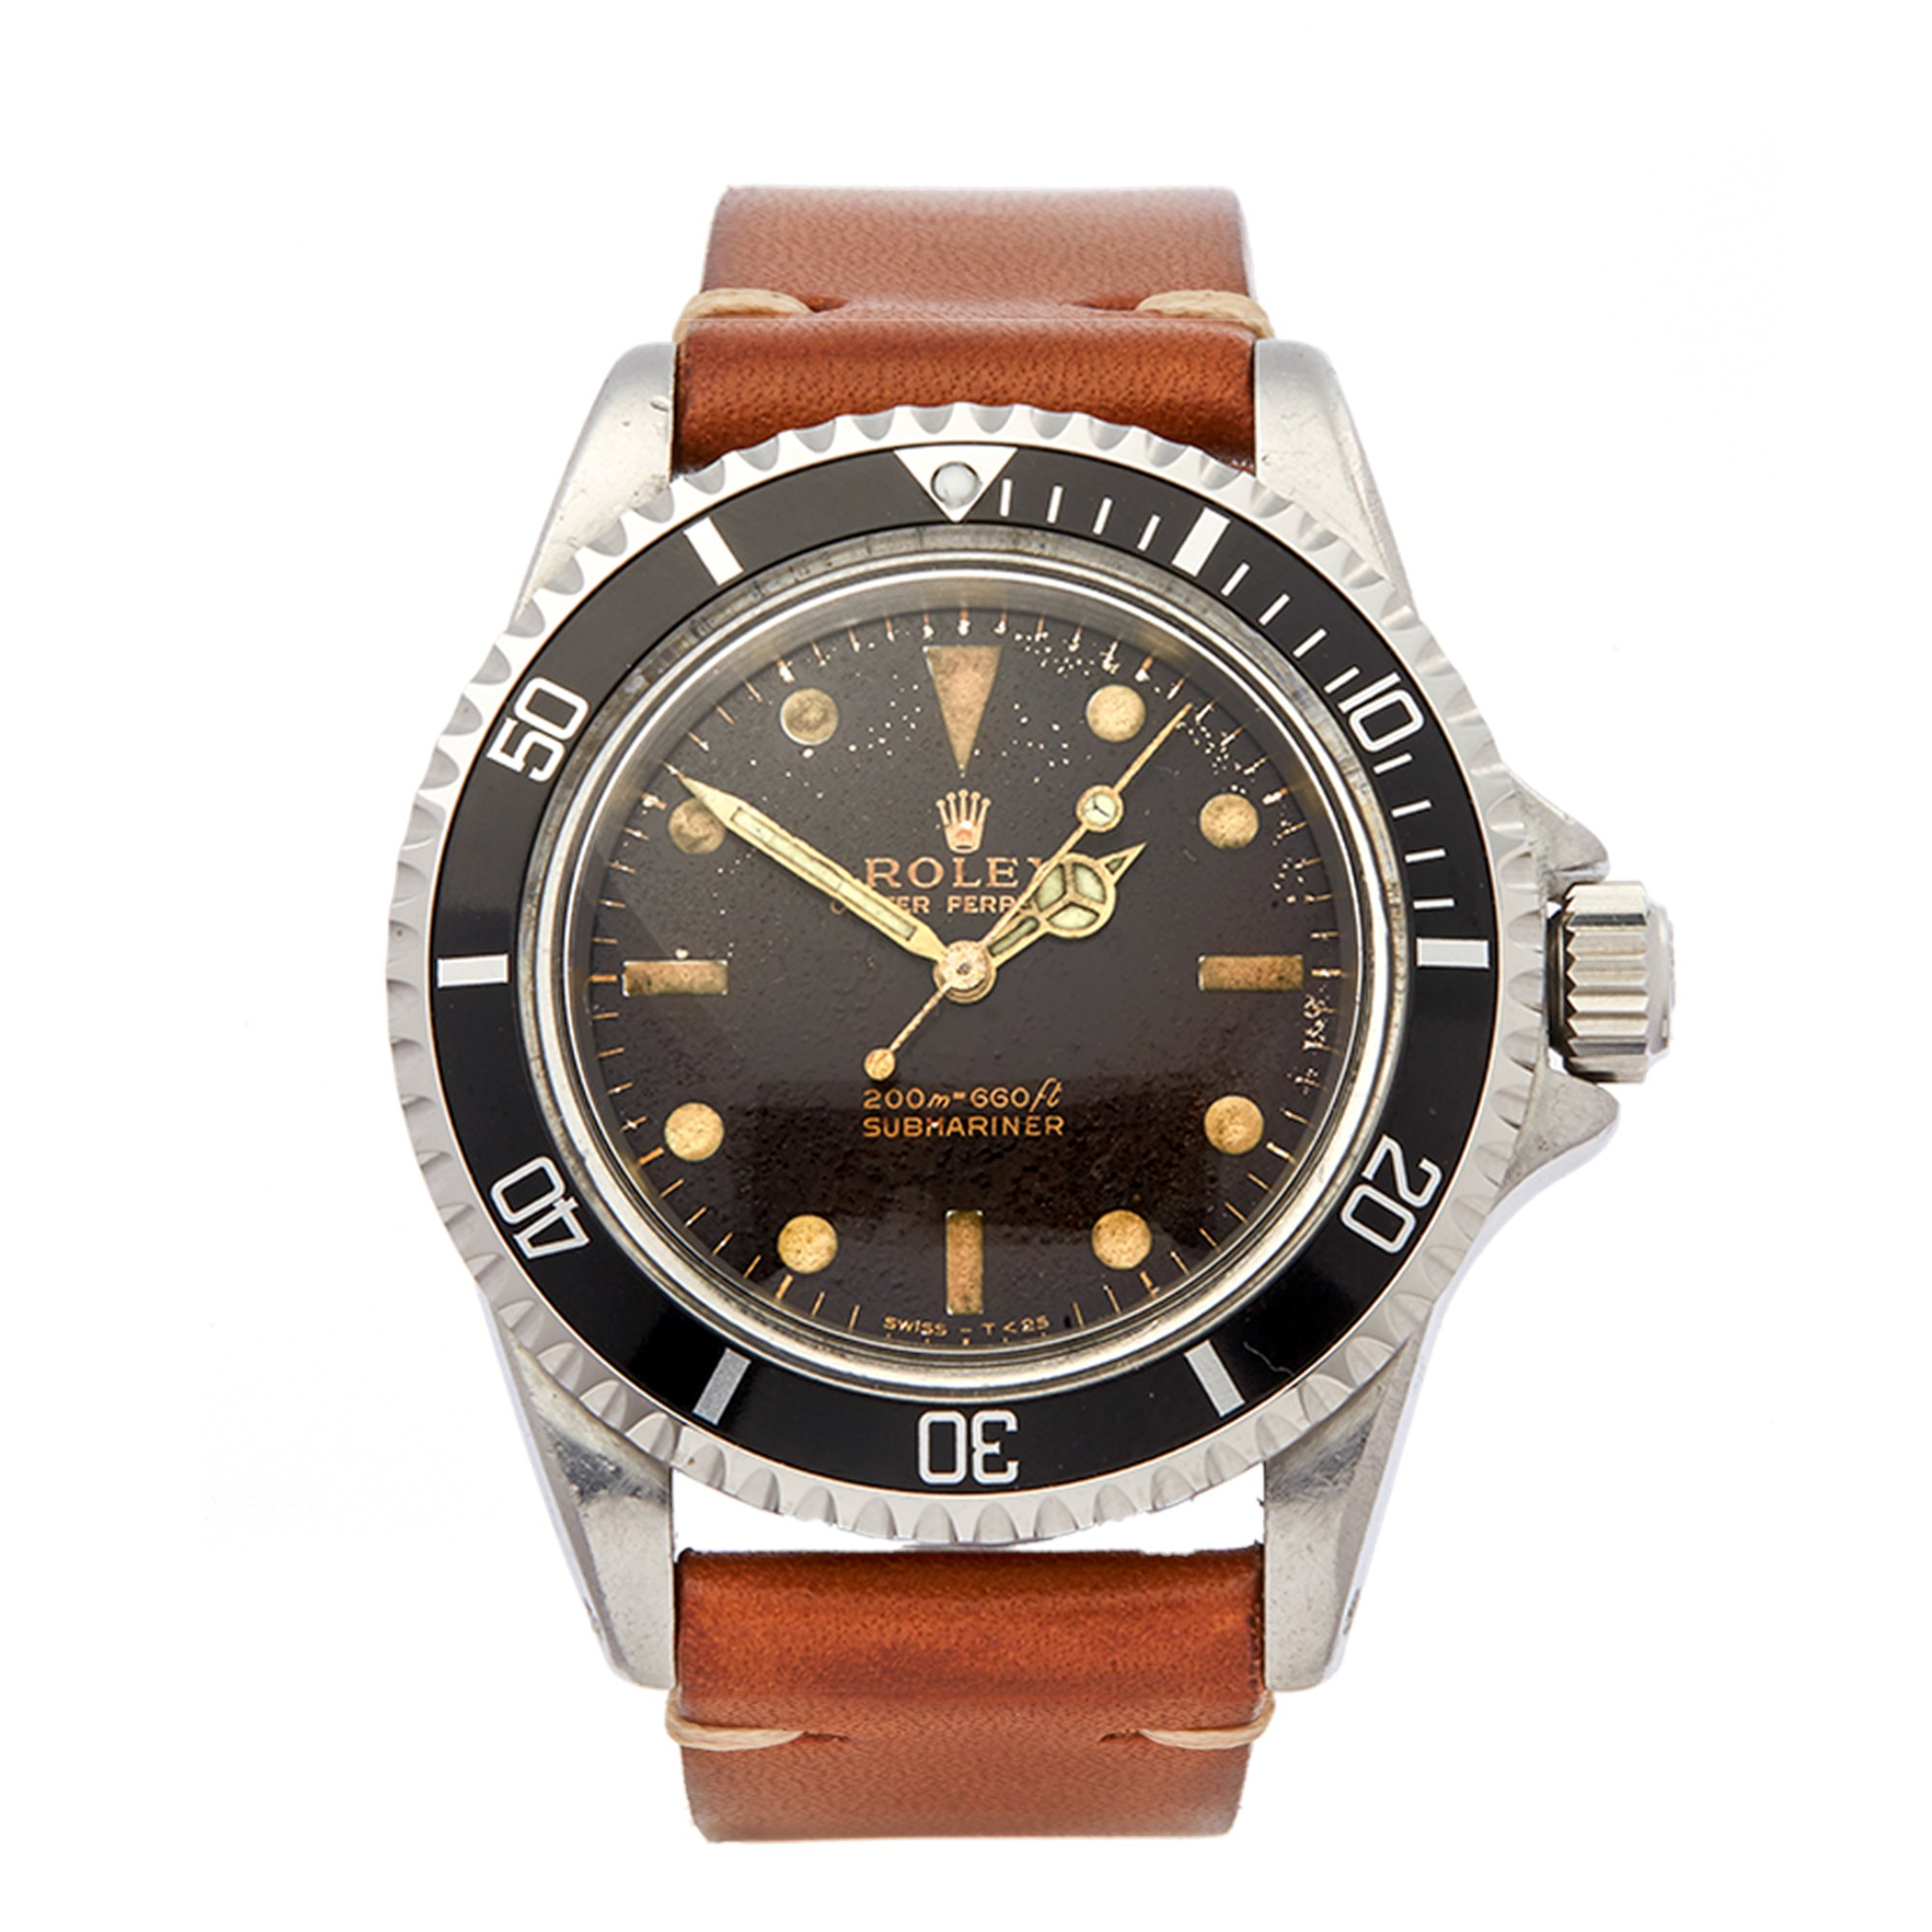 Rolex Submariner No Date Tropical Dial Stainless Steel 5513